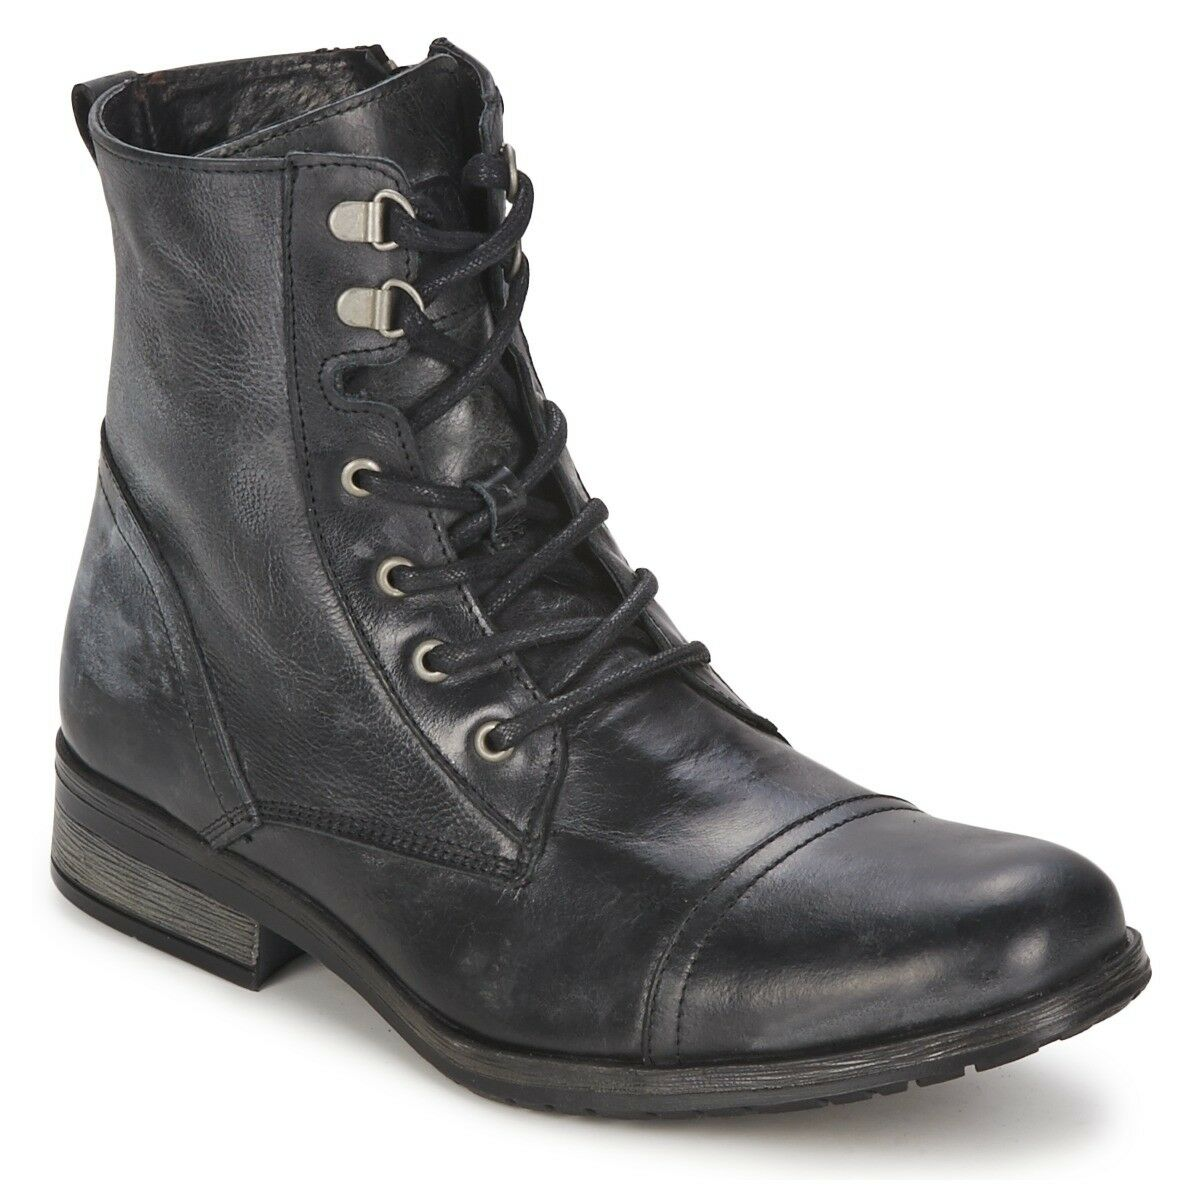 Handmade Hombre Negro Military boots, Hombre Negro high ankle Botas combat Botas ankle 7313af